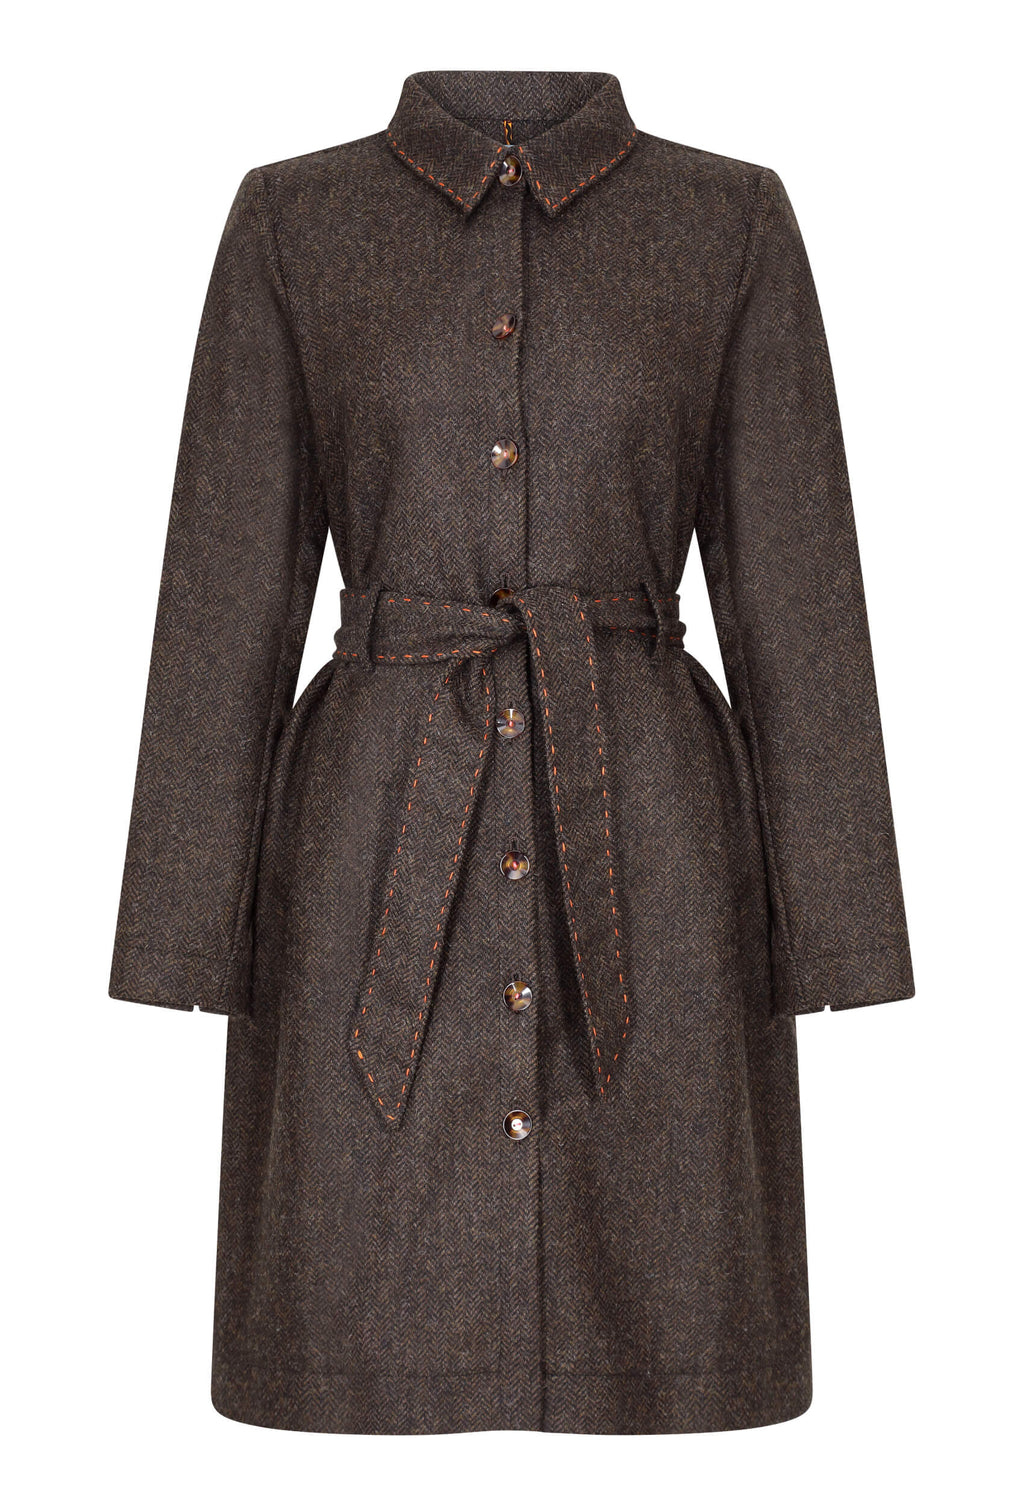 chocolate-brown-herringbone-tweed-coat-dress-made-in-britain